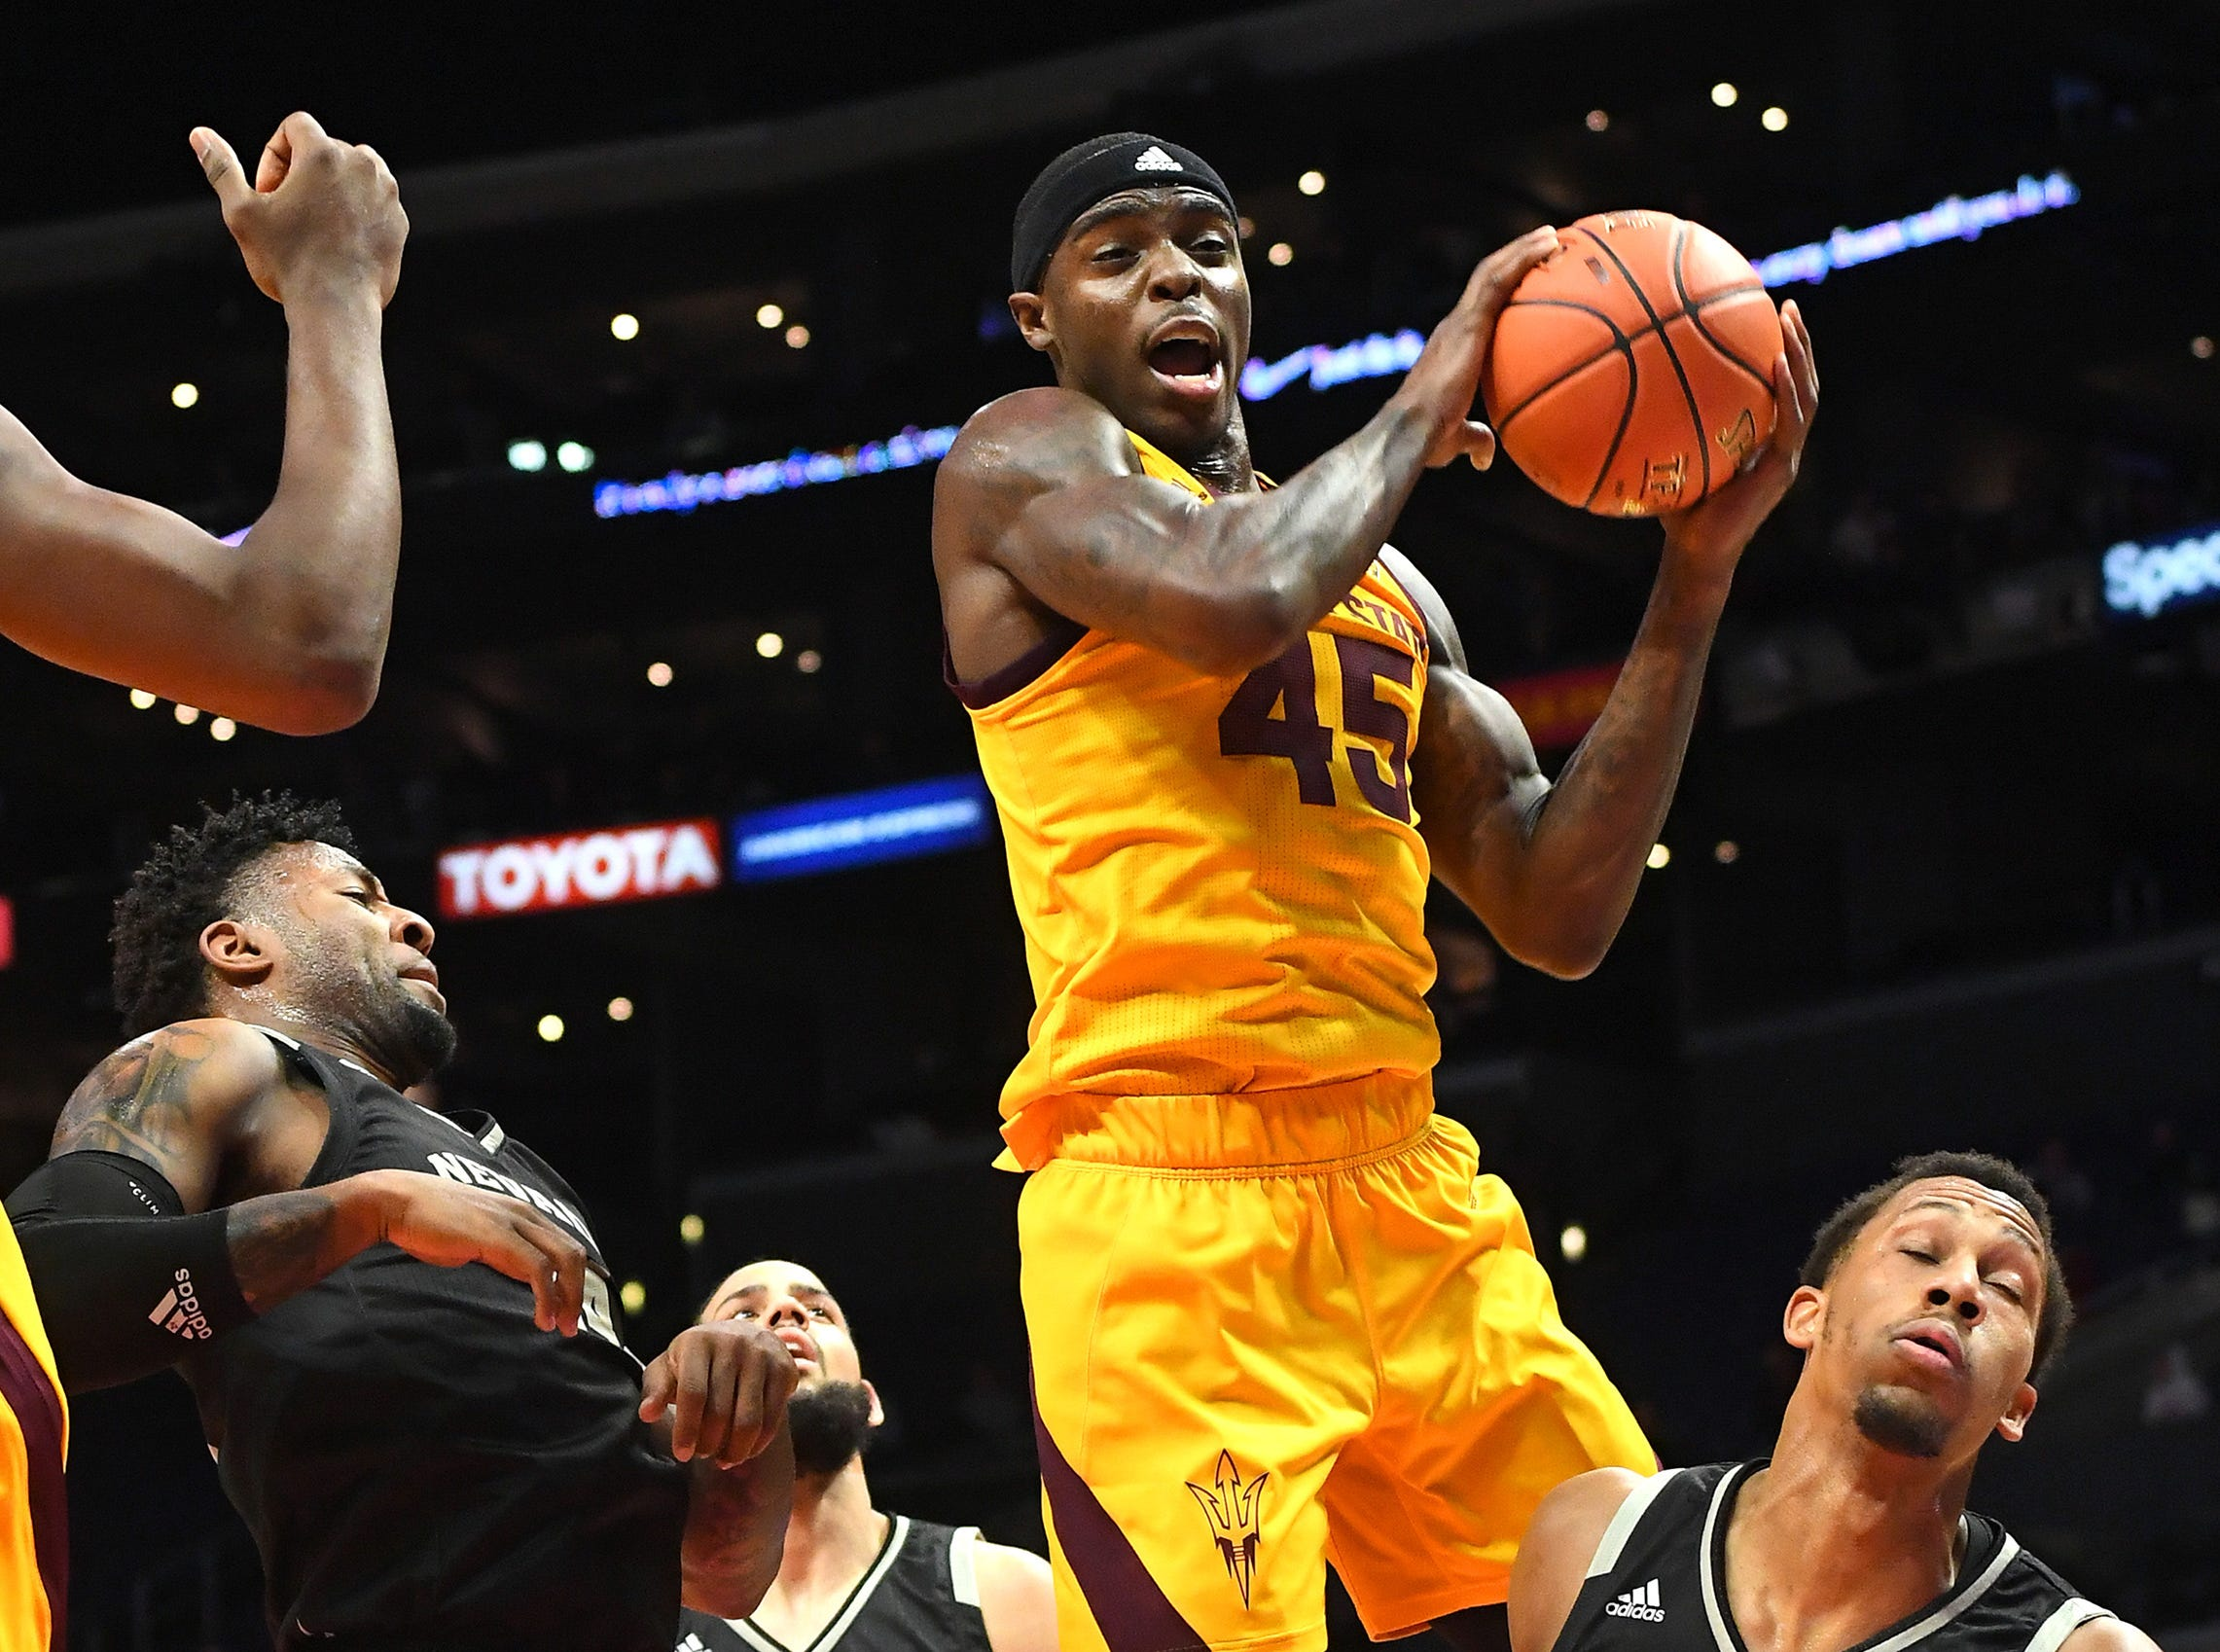 Dec 7, 2018; Los Angeles, CA, USA;  Arizona State Sun Devils forward Zylan Cheatham (45) grabs a rebound in the first half of the game against the Nevada Wolf Pack at Staples Center. Mandatory Credit: Jayne Kamin-Oncea-USA TODAY Sports